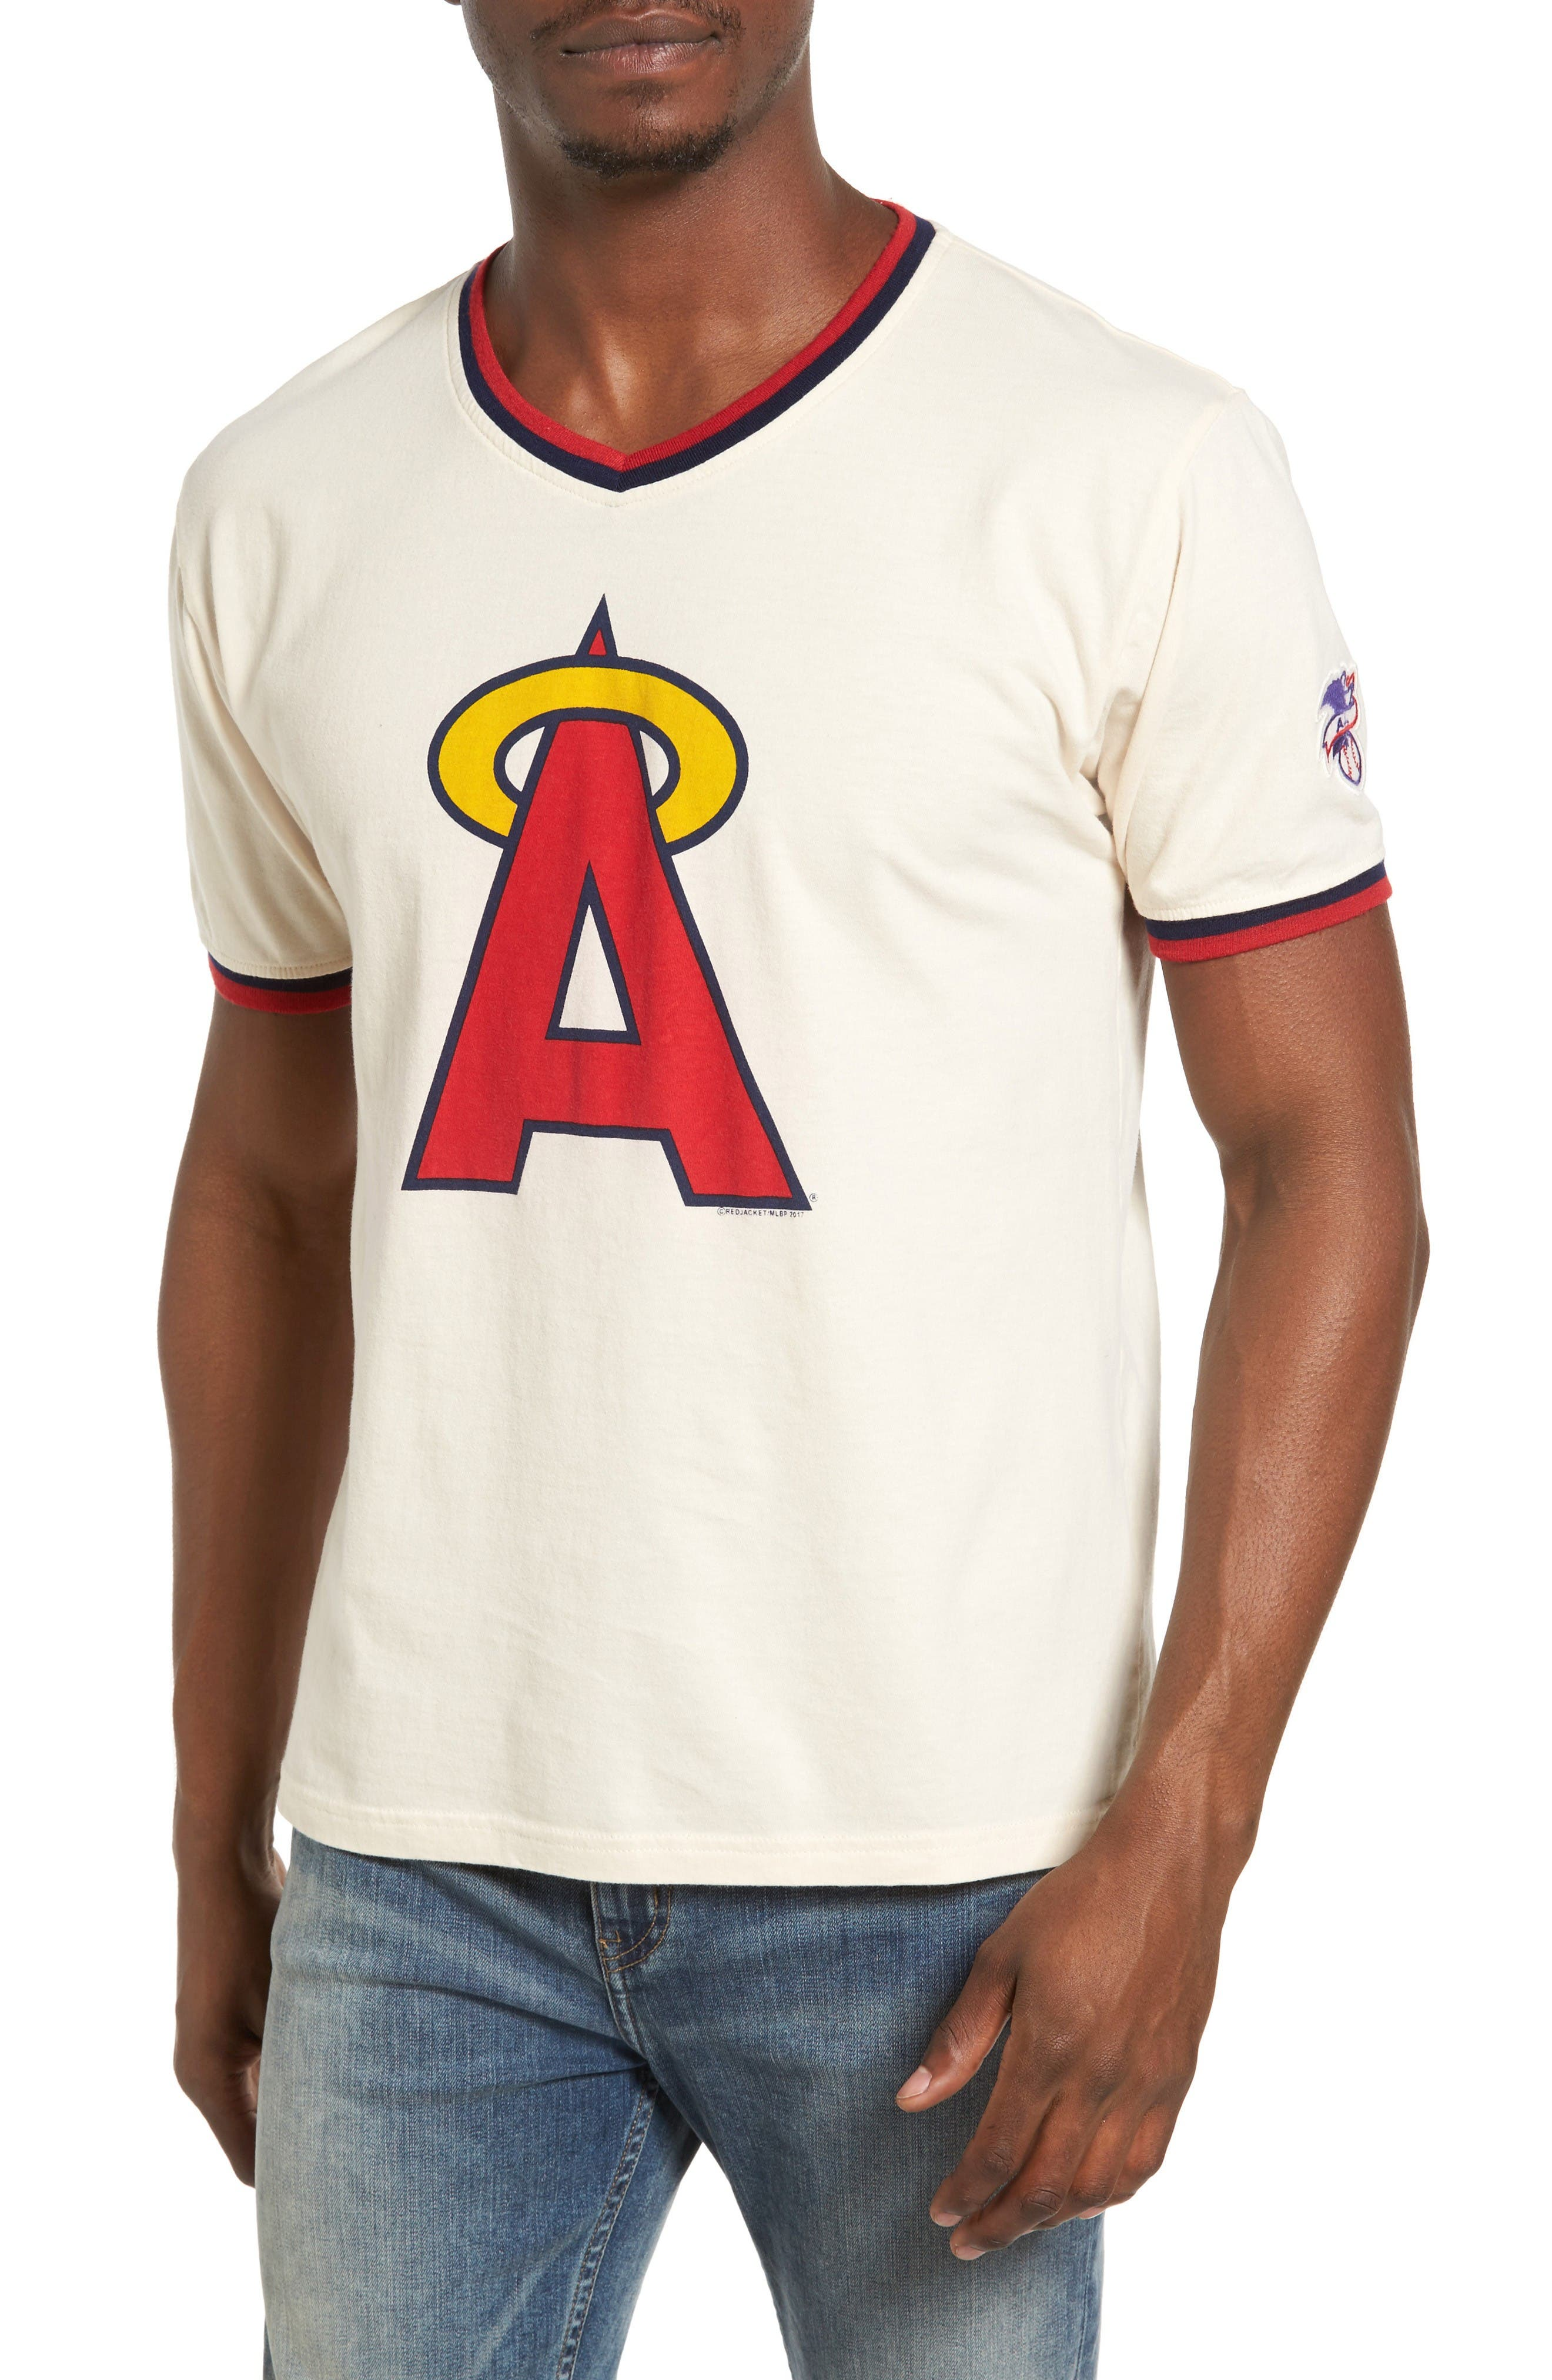 Main Image - American Needle Eastwood Los Angeles Angels of Anaheim T-Shirt